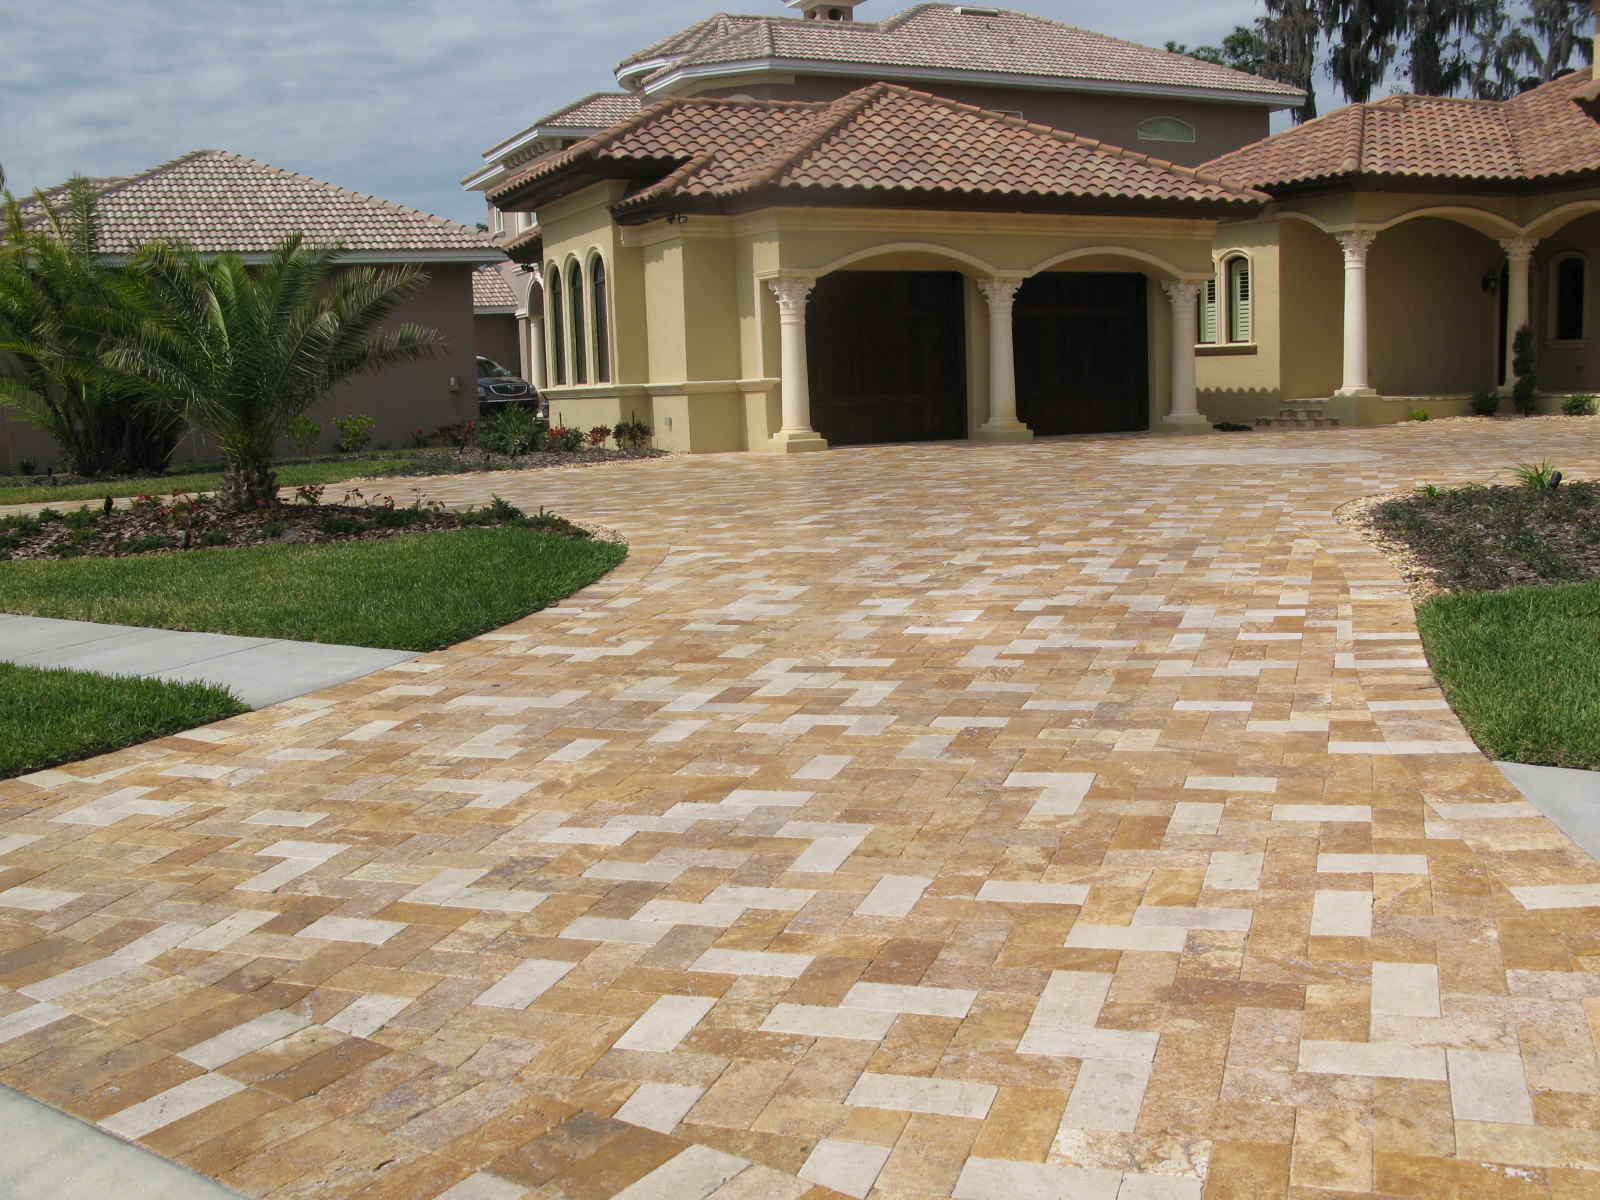 stamped concrete driveway patio design ideas everything you need to know concrete driveway design ideas - Concrete Driveway Design Ideas